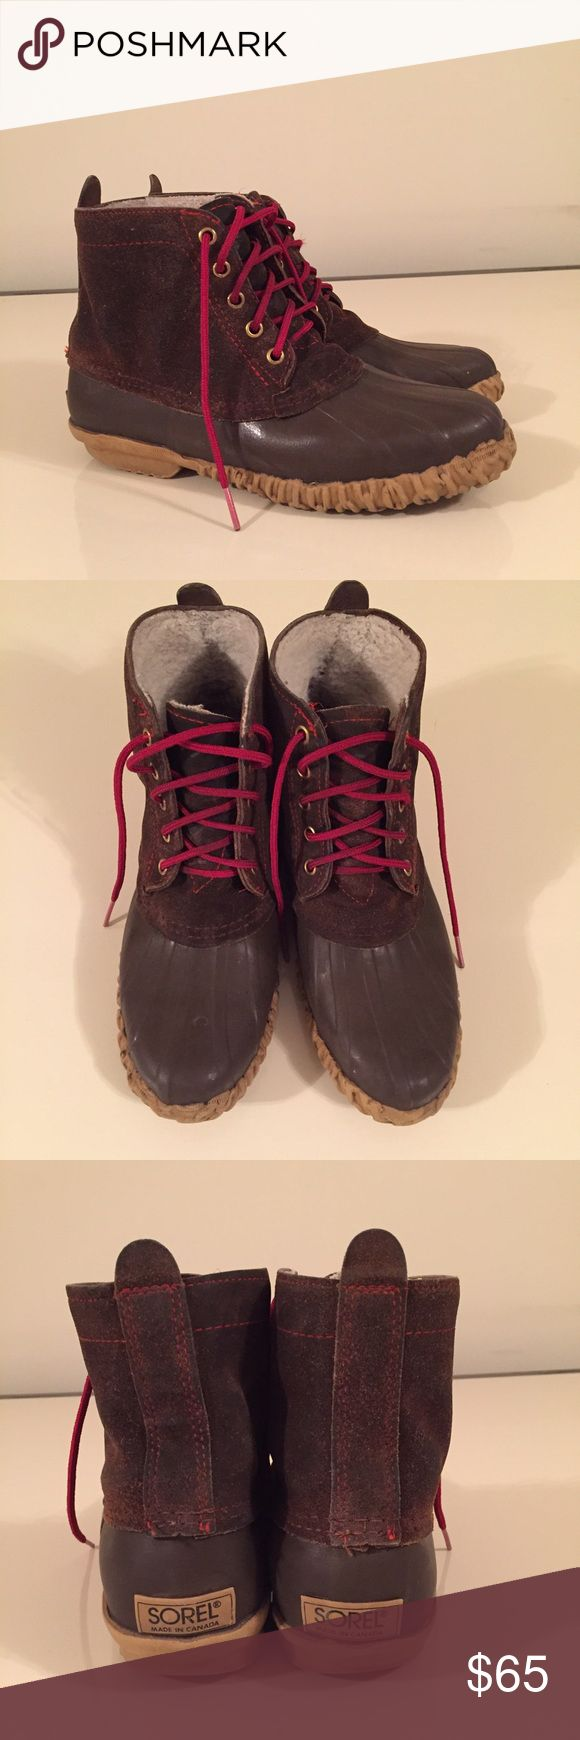 Sorel duck boots size 8 brown and red laces Sorel duck boots size 8 brown and red laces Sorel Shoes Winter & Rain Boots